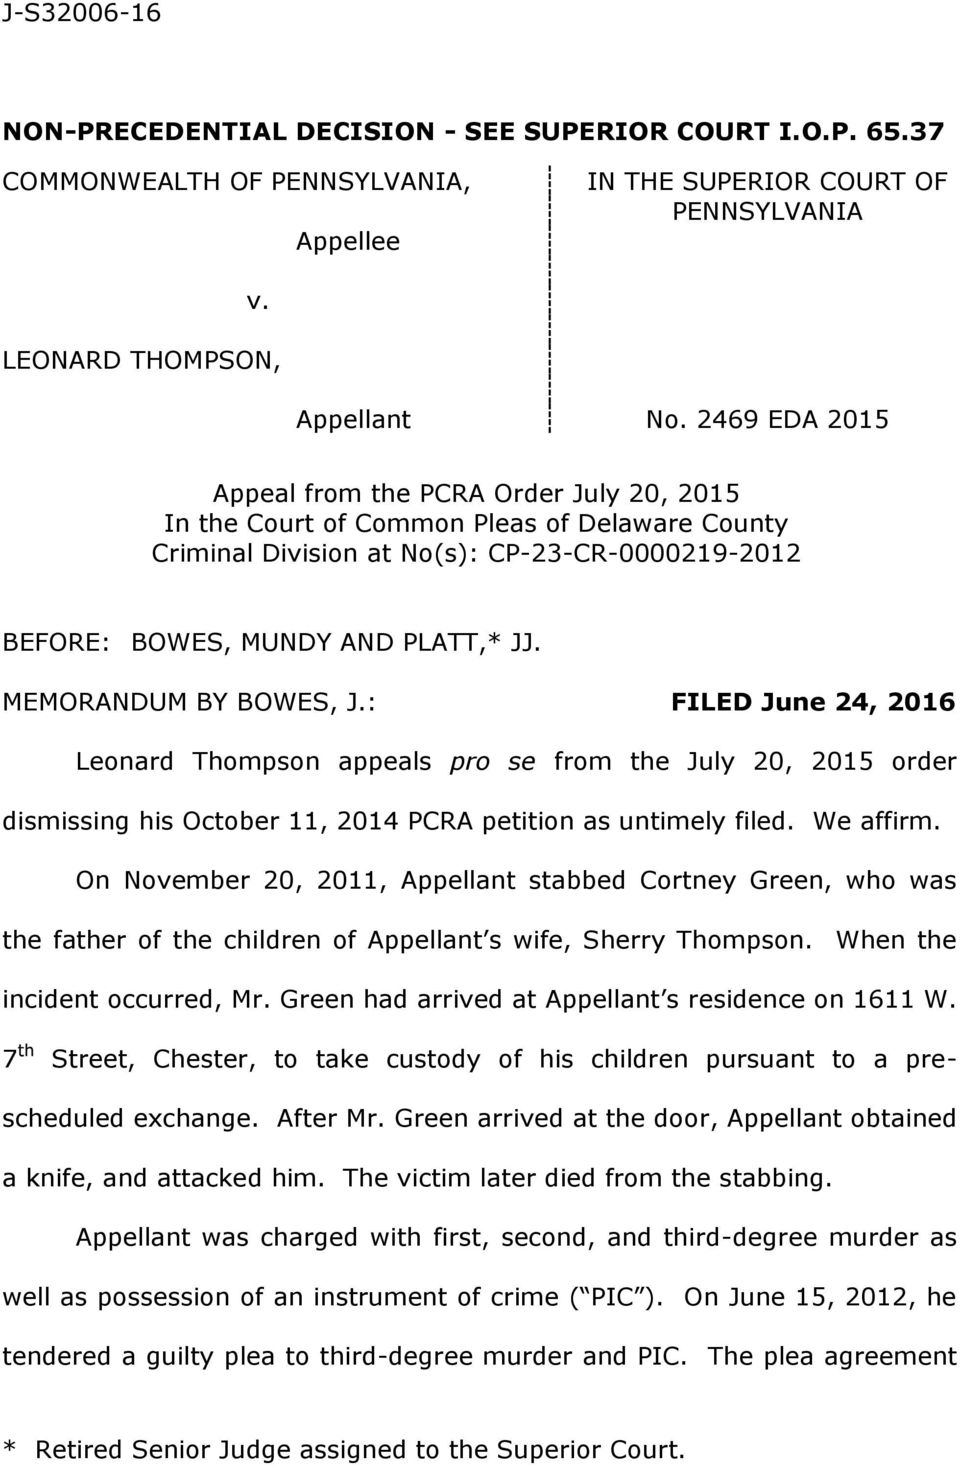 MEMORANDUM BY BOWES, J.: FILED June 24, 2016 Leonard Thompson appeals pro se from the July 20, 2015 order dismissing his October 11, 2014 PCRA petition as untimely filed. We affirm.